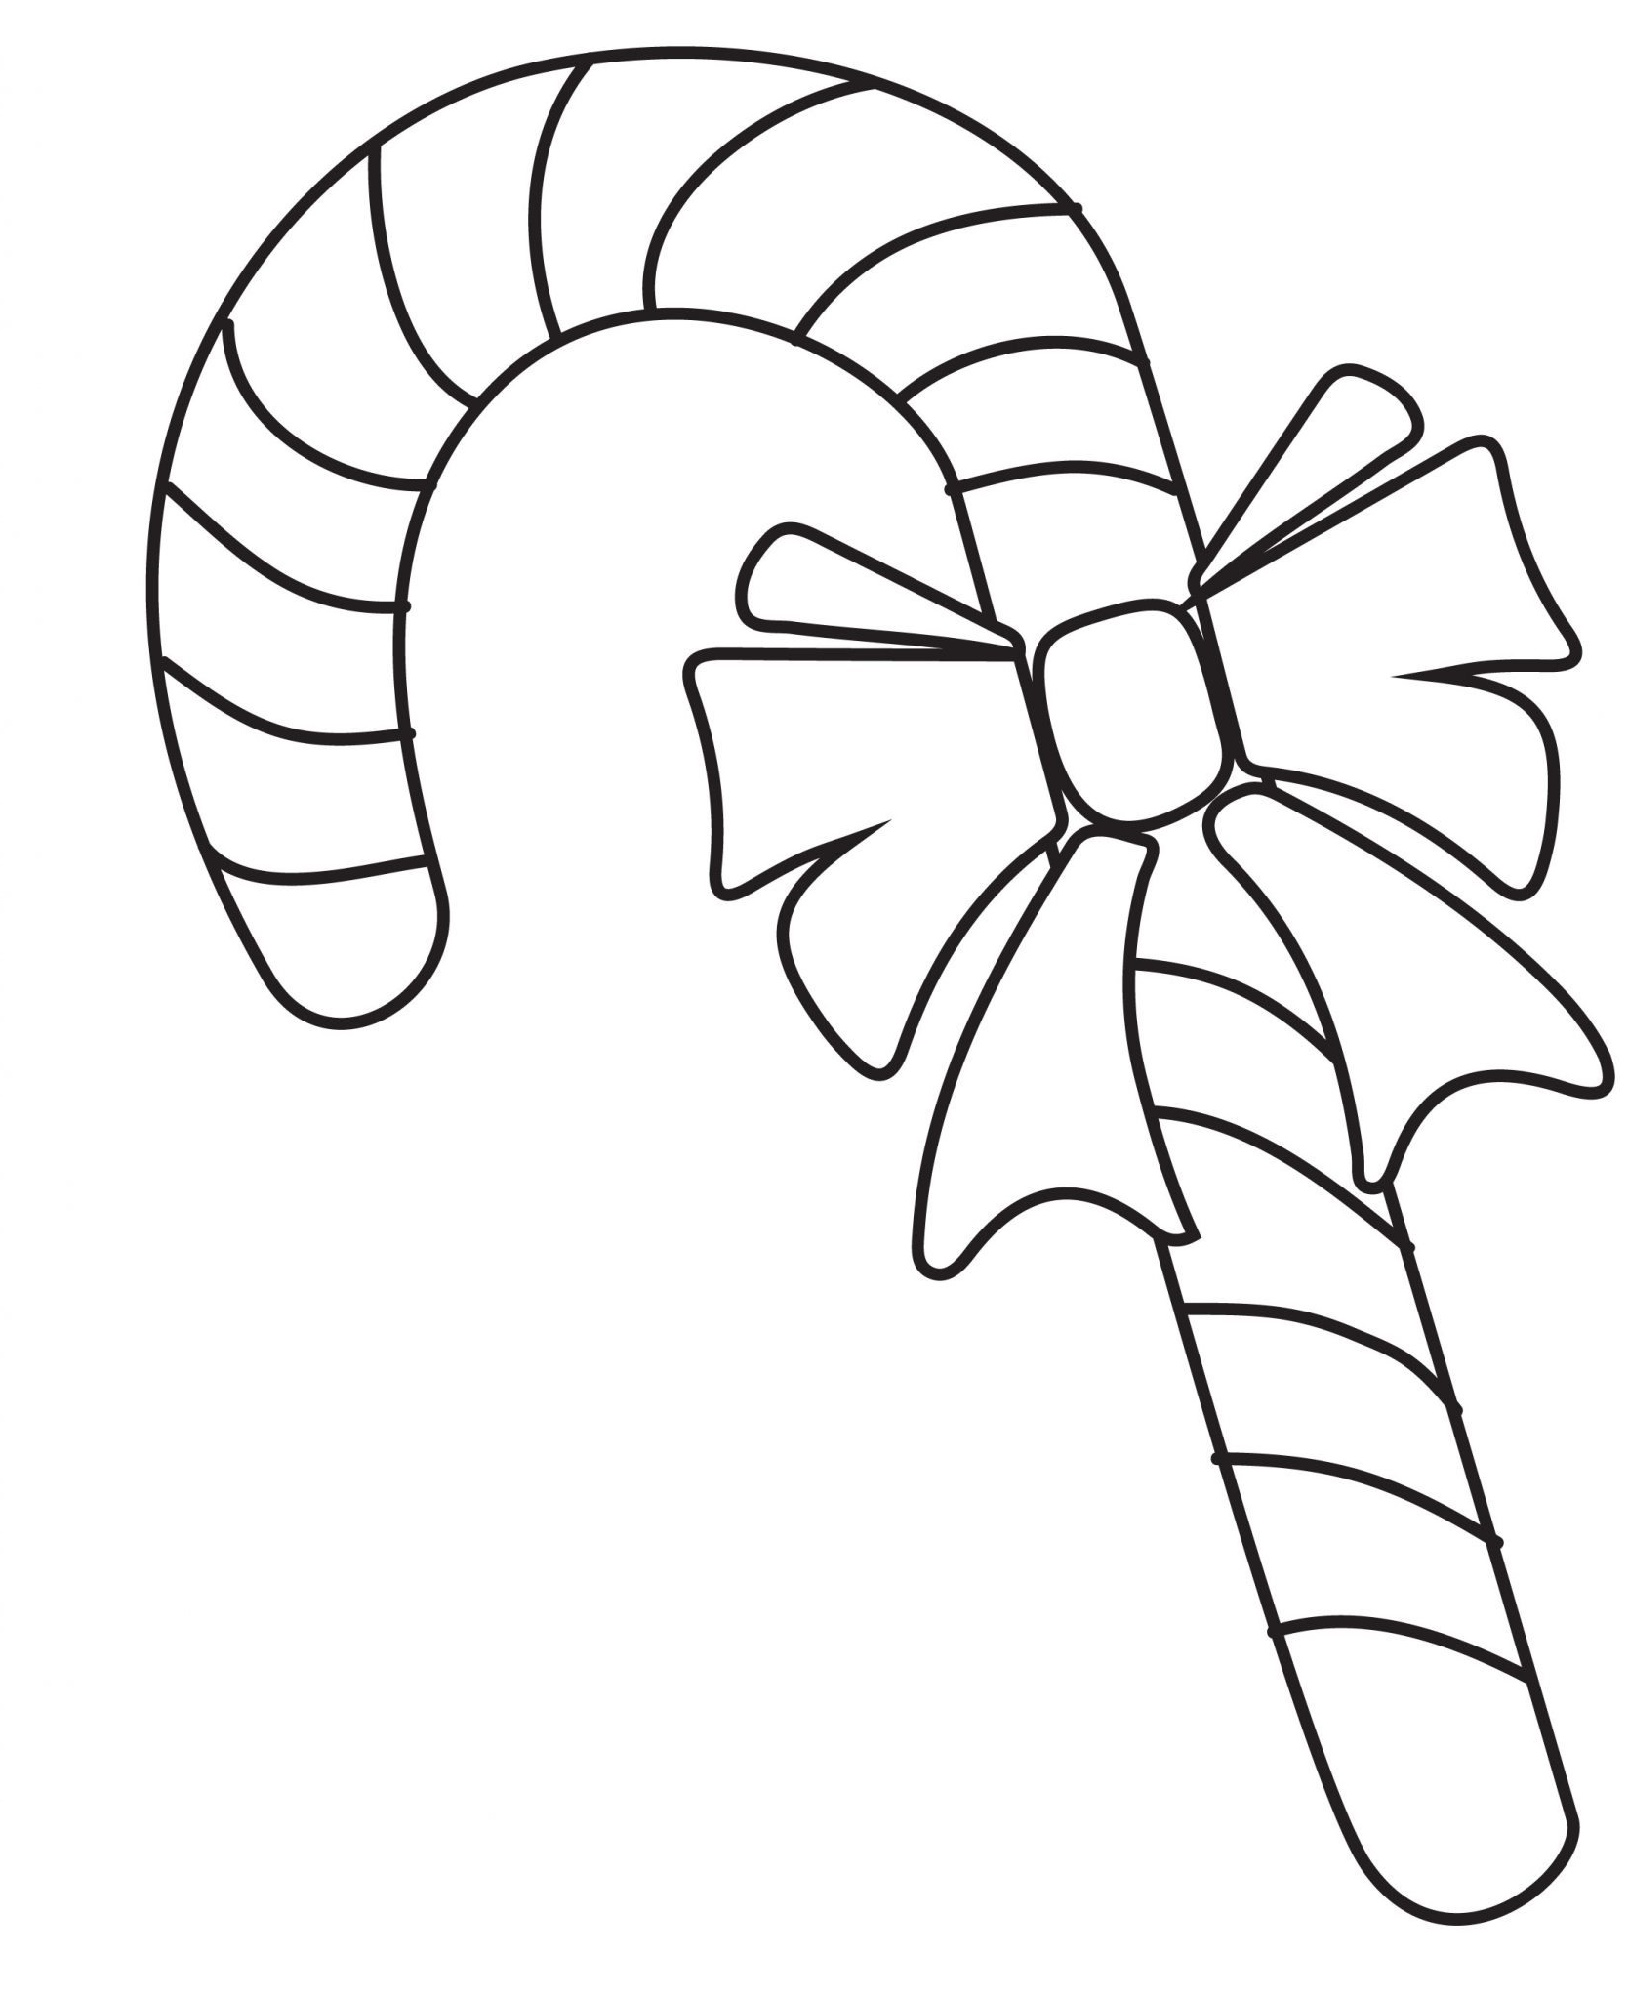 Candy Cane Coloring Page To Print – K5 Worksheets